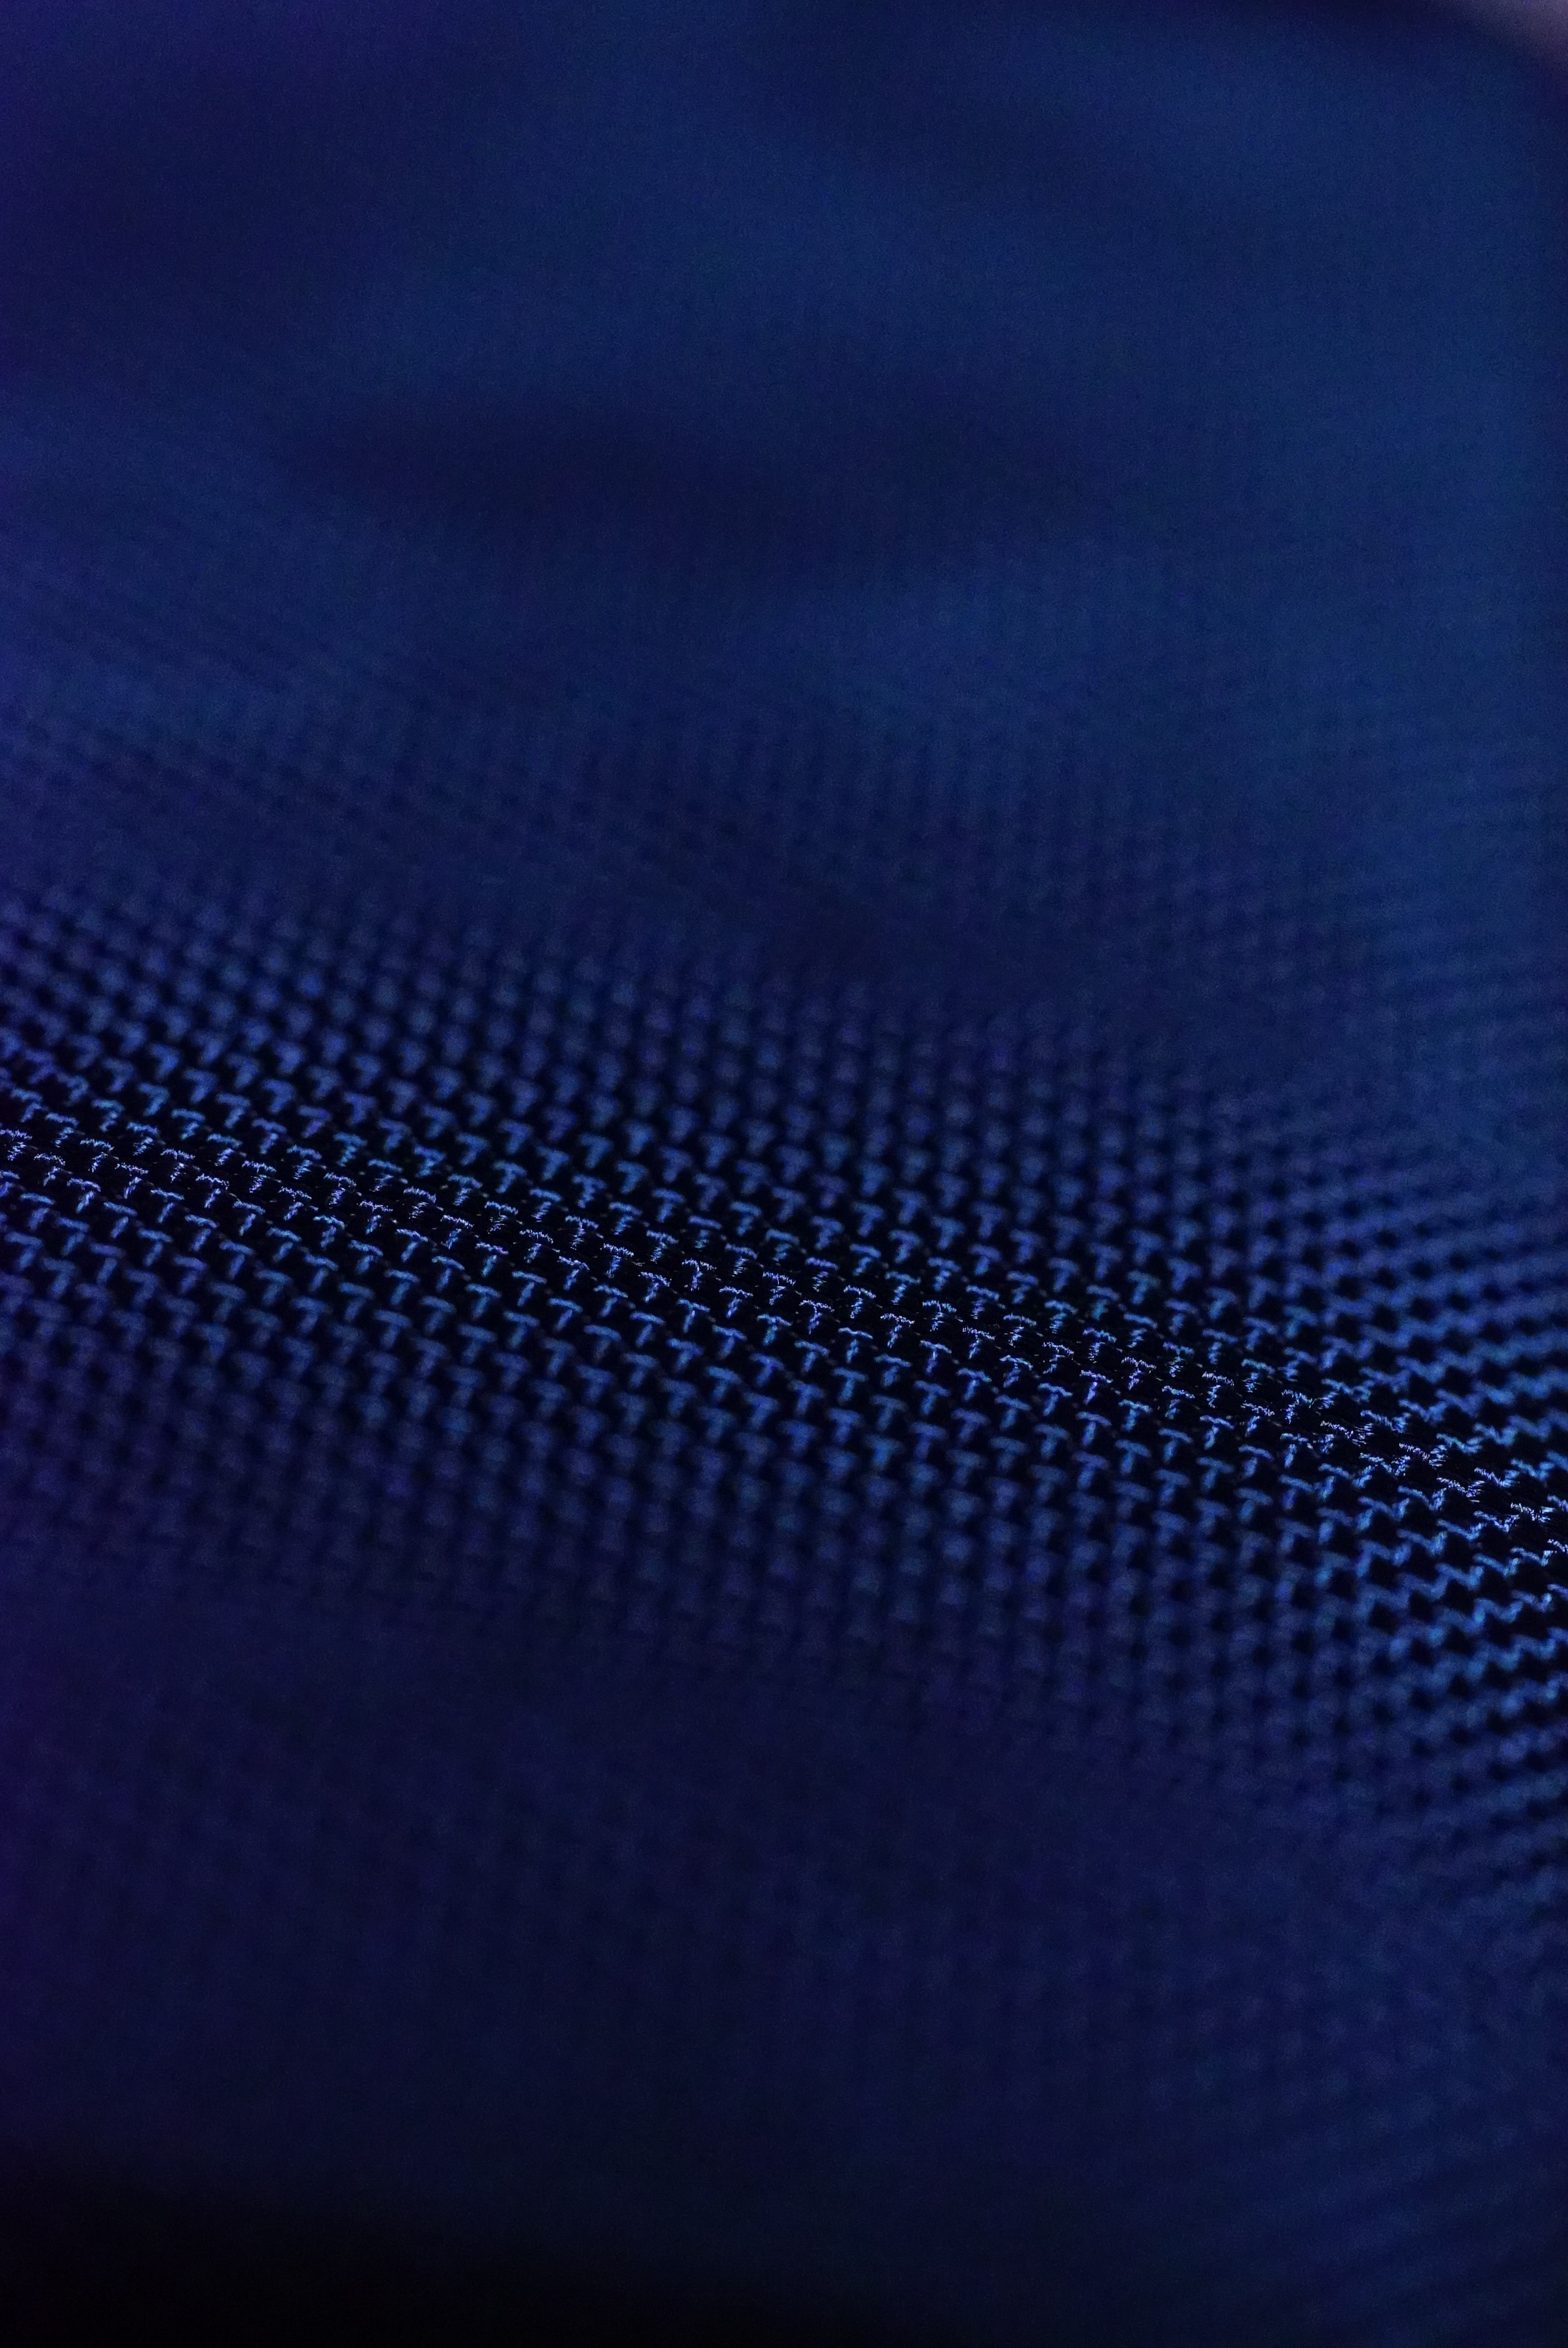 114692 download wallpaper Macro, Texture, Textures, Cloth screensavers and pictures for free